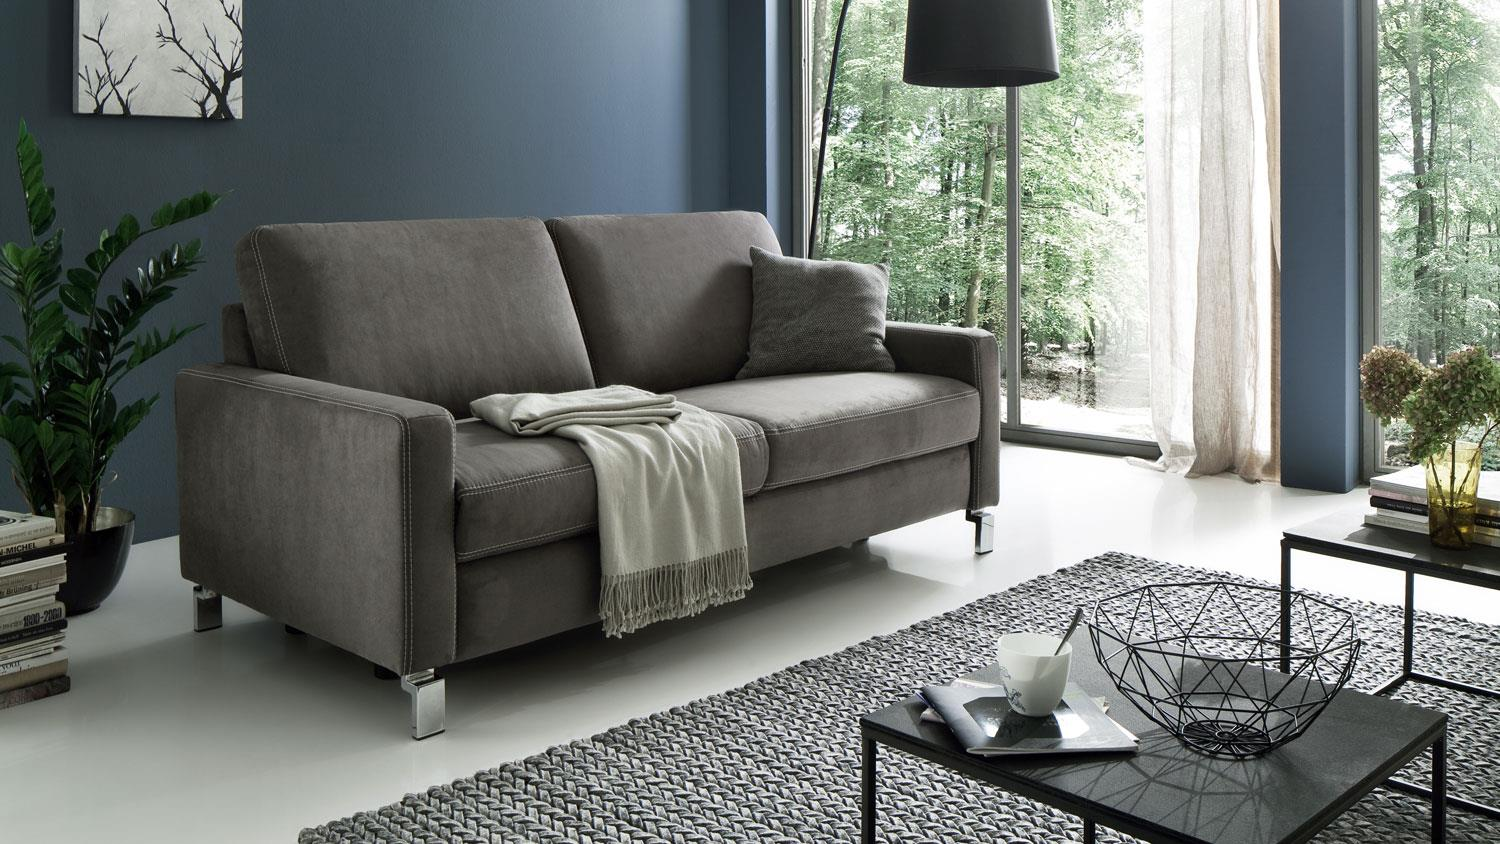 Sofa COAST PLUS 3 Sitzer Couch in Stoff anthrazit mit